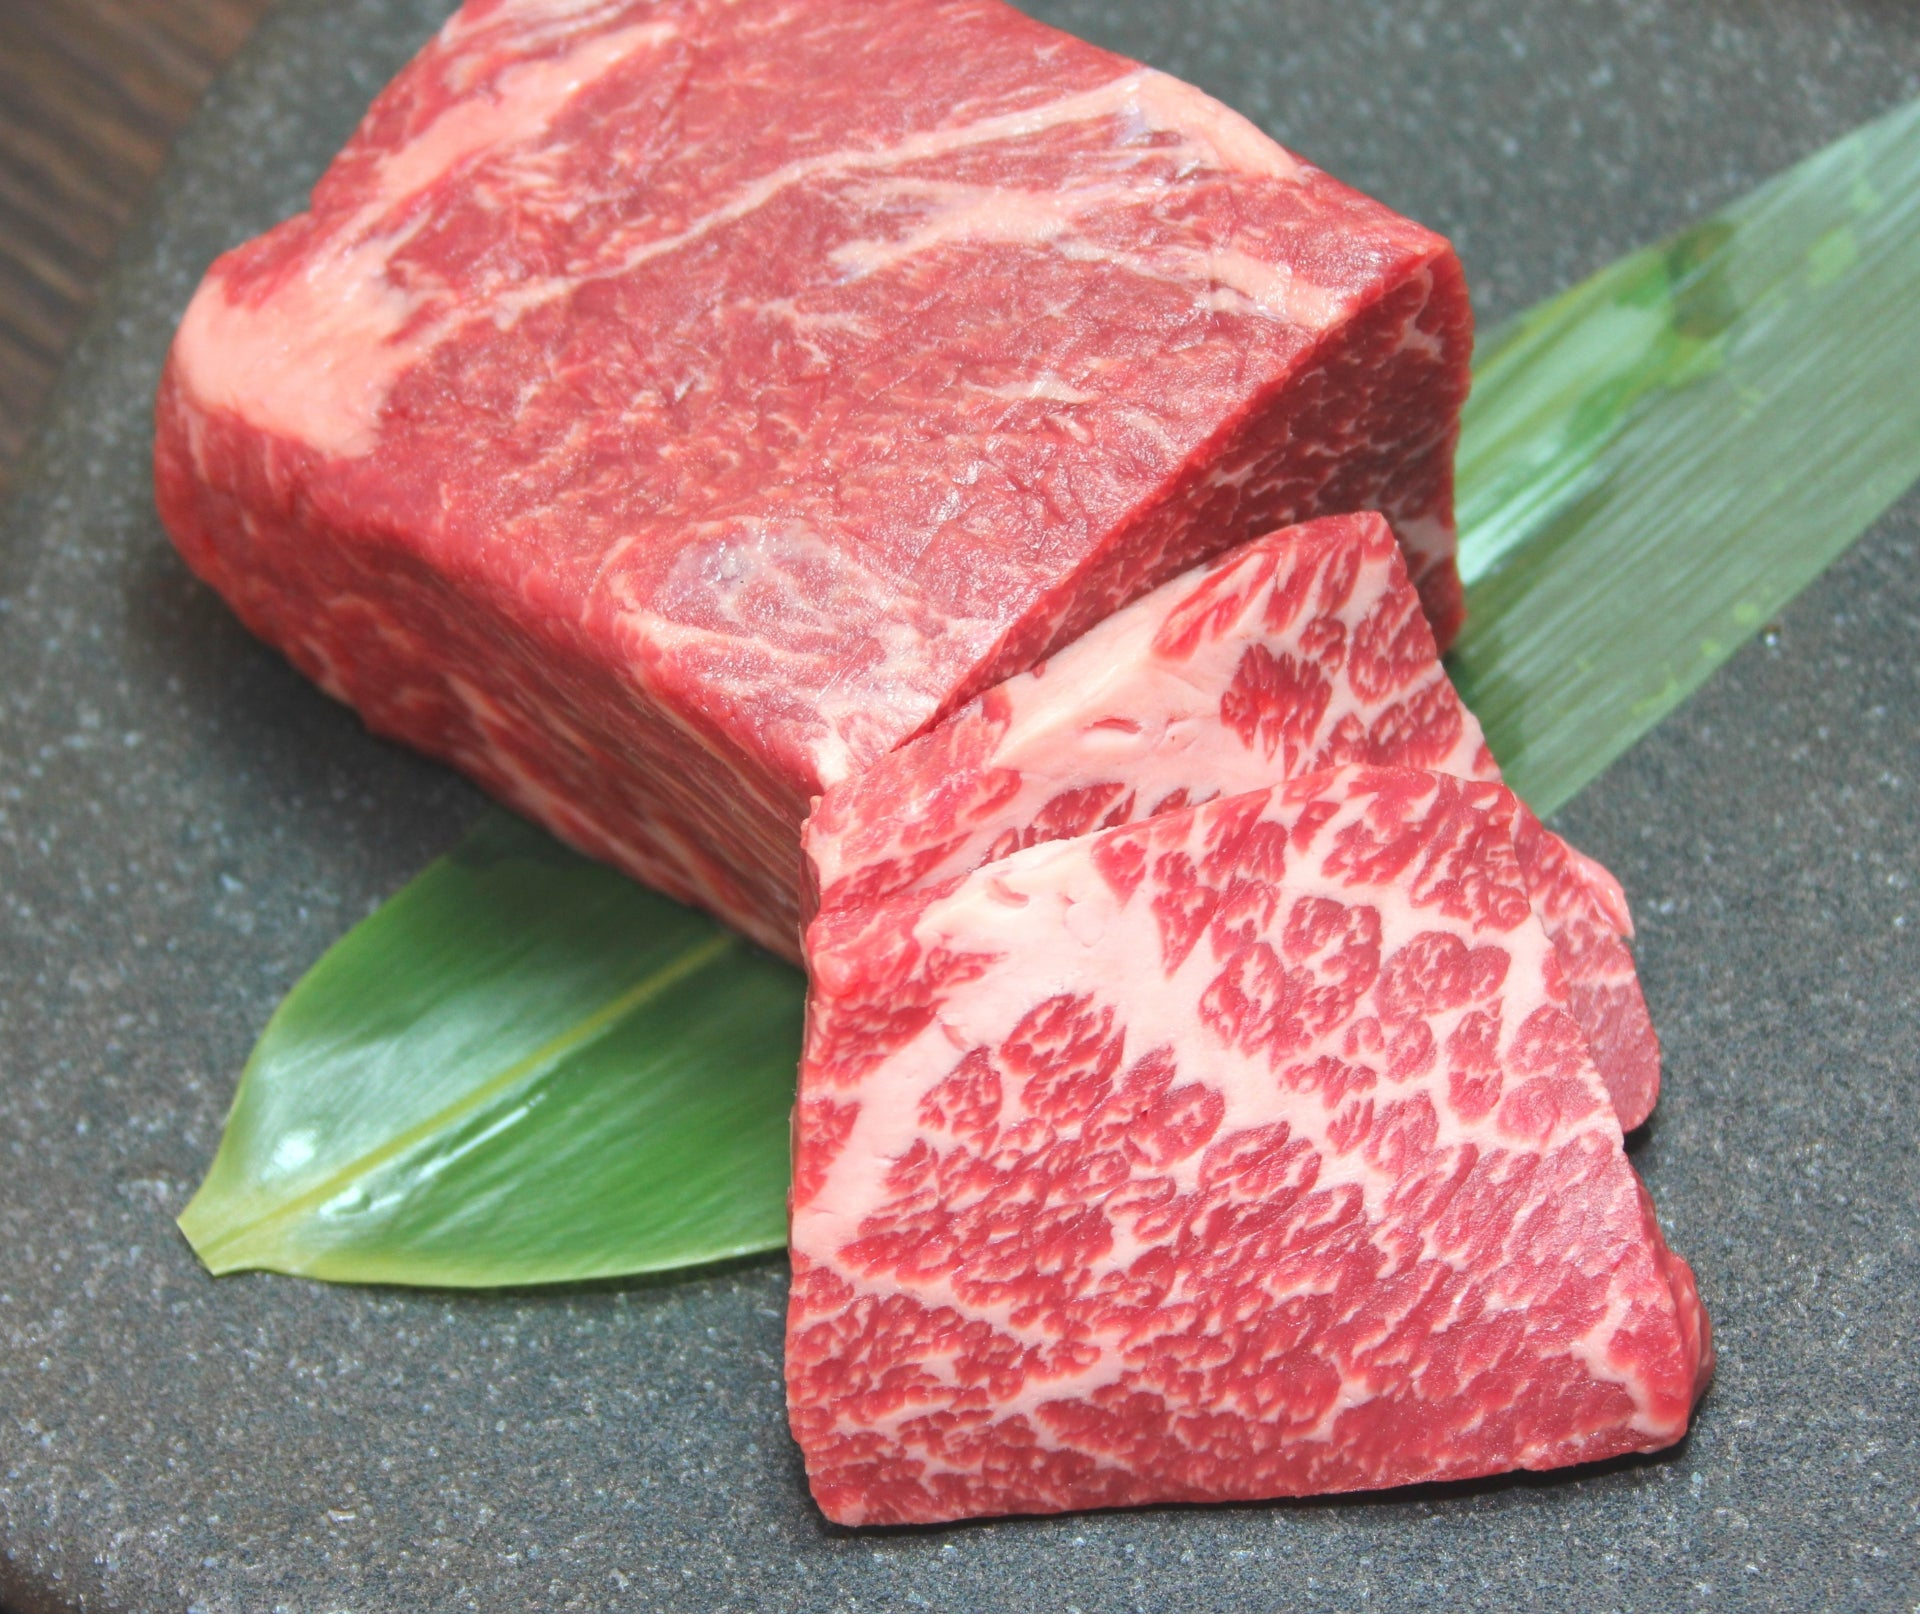 Soy source for Wagyu beef